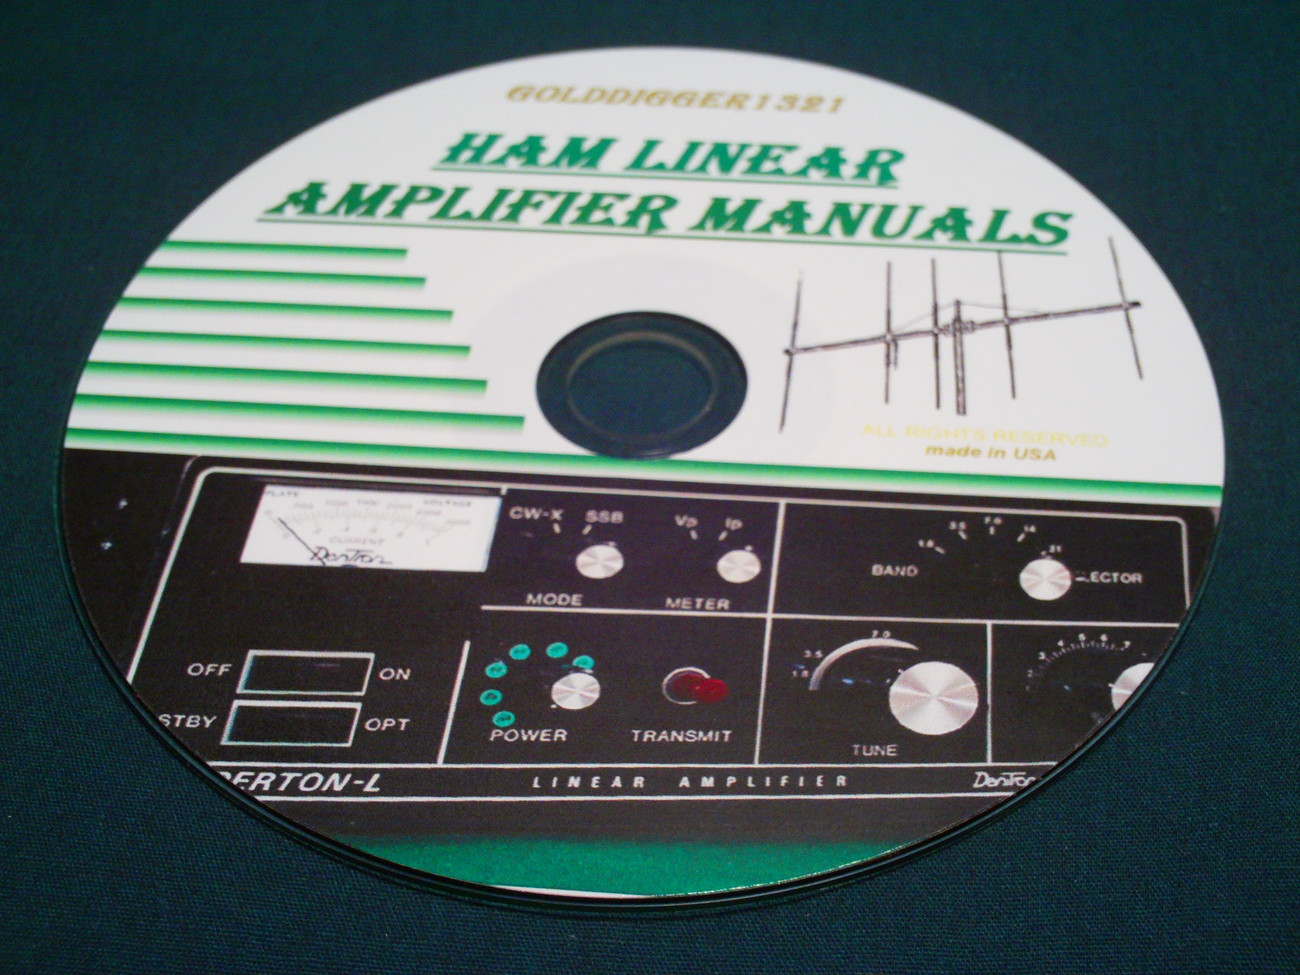 HAM LINEAR AMPLIFIER MANUALS ON CD